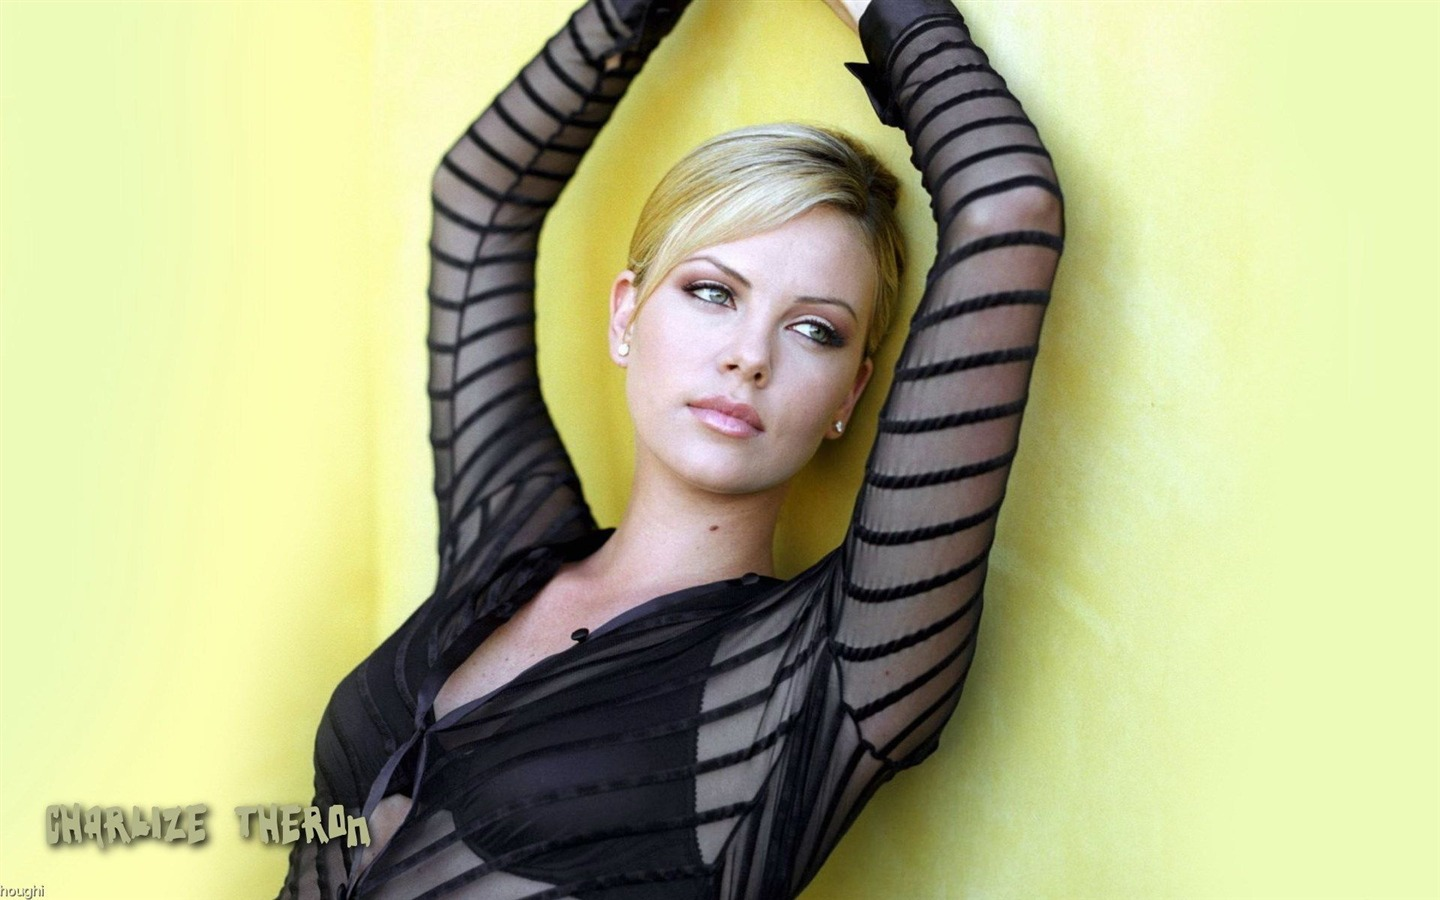 Charlize Theron #093 - 1440x900 Wallpapers Pictures Photos Images